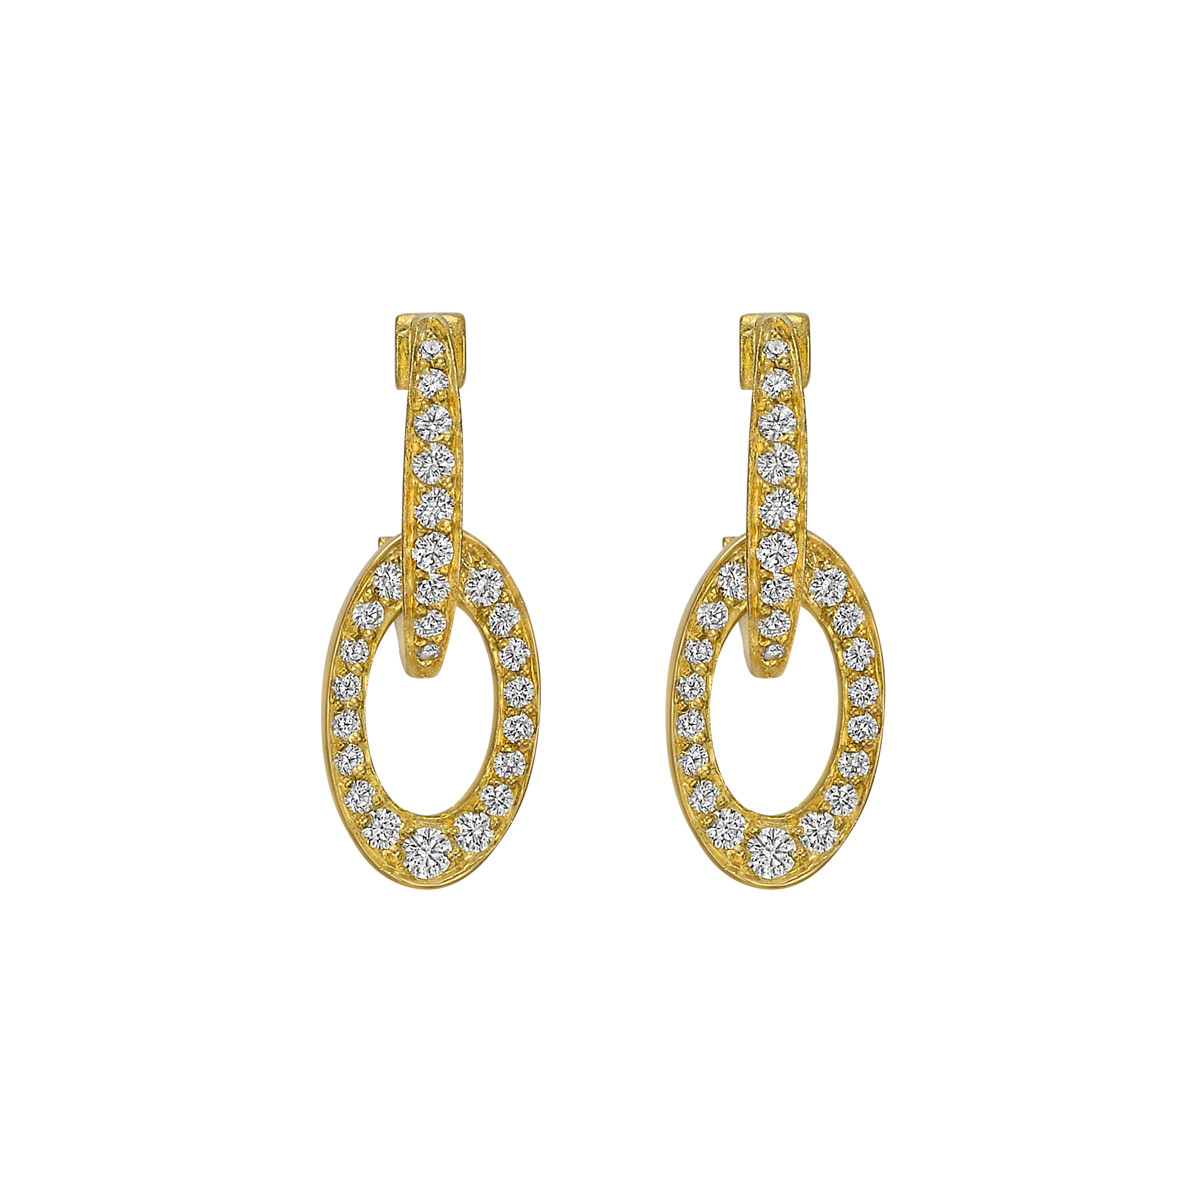 18k Yellow Gold & Diamond Oval Drop Earrings